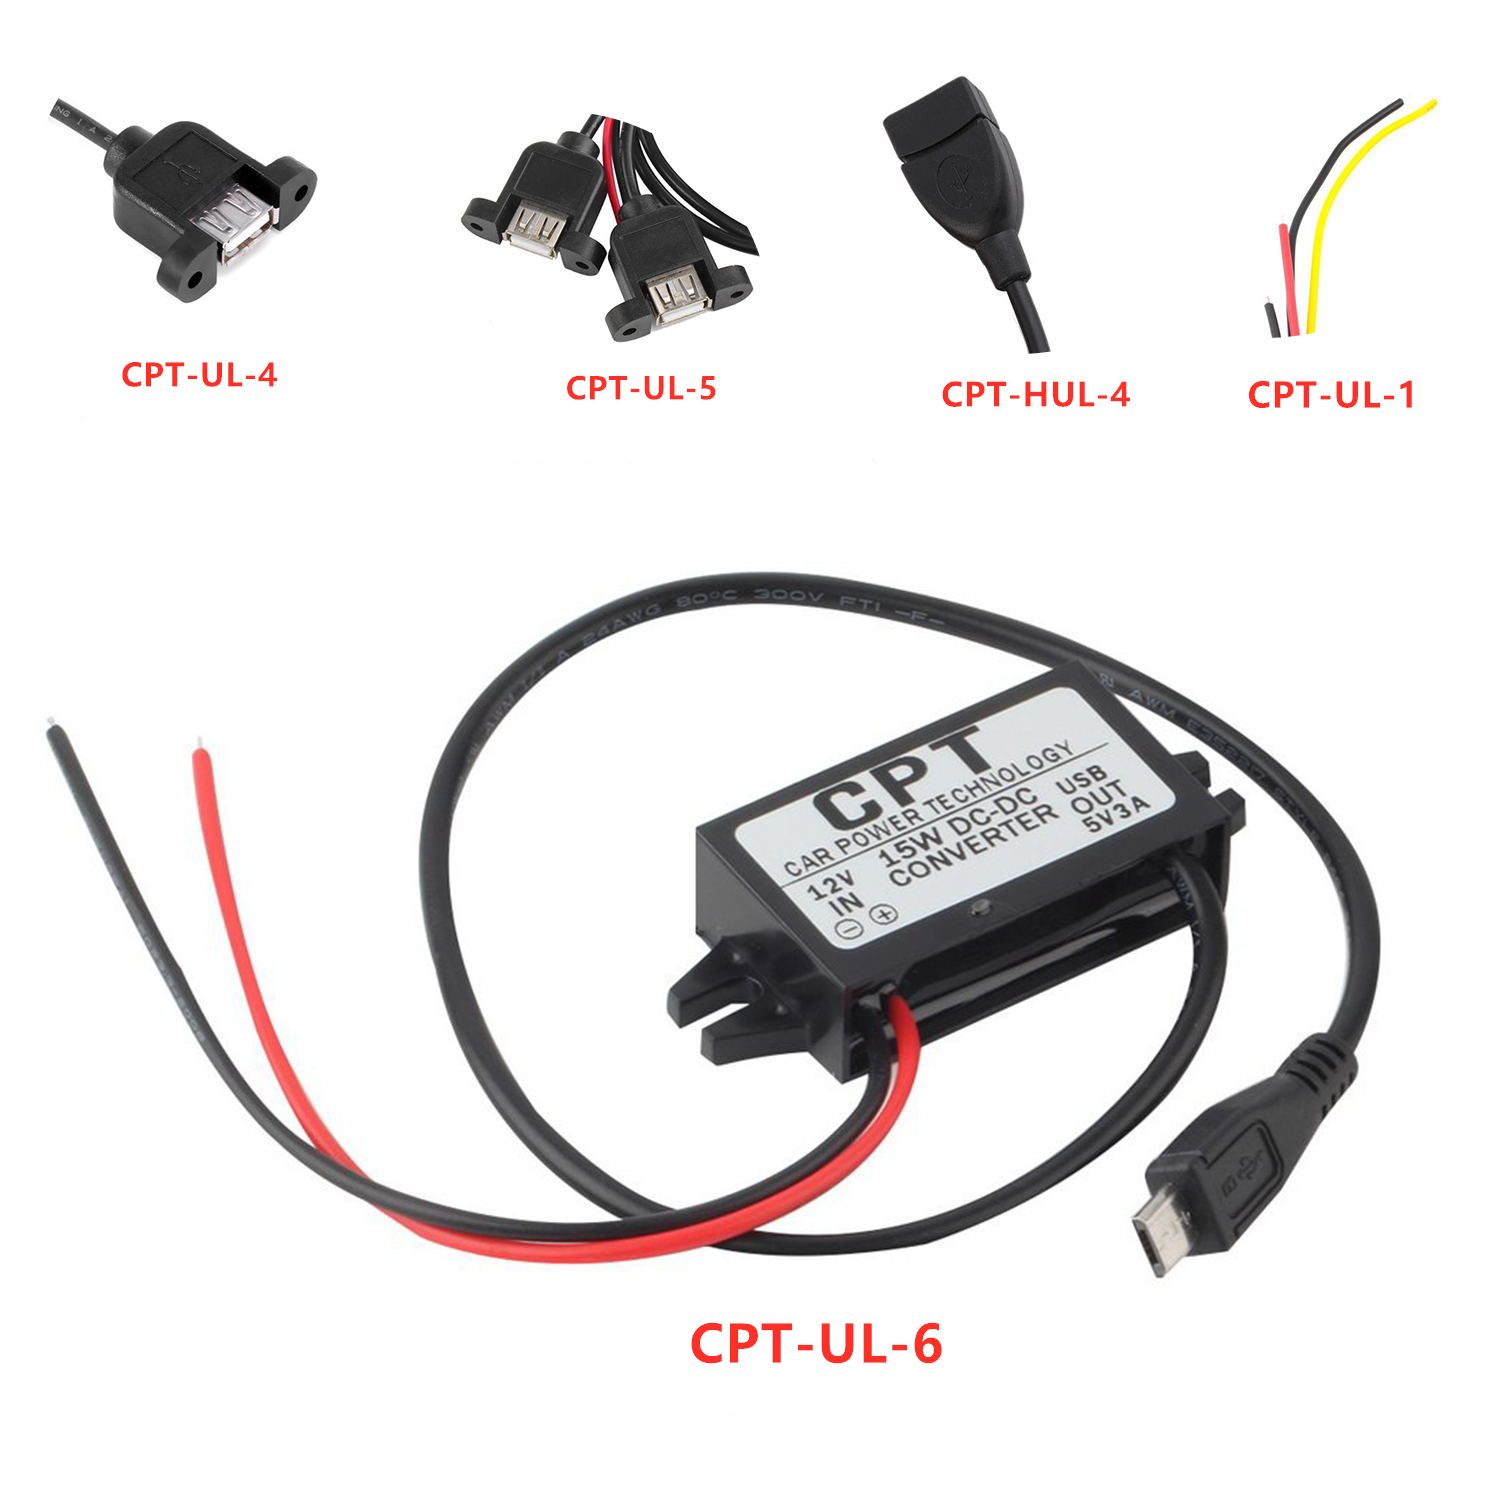 5 Types Car Power Technology Charger DC Converter Module Single Port 12V To 5V 3A 15W With Micro USB Cable Dropshipping